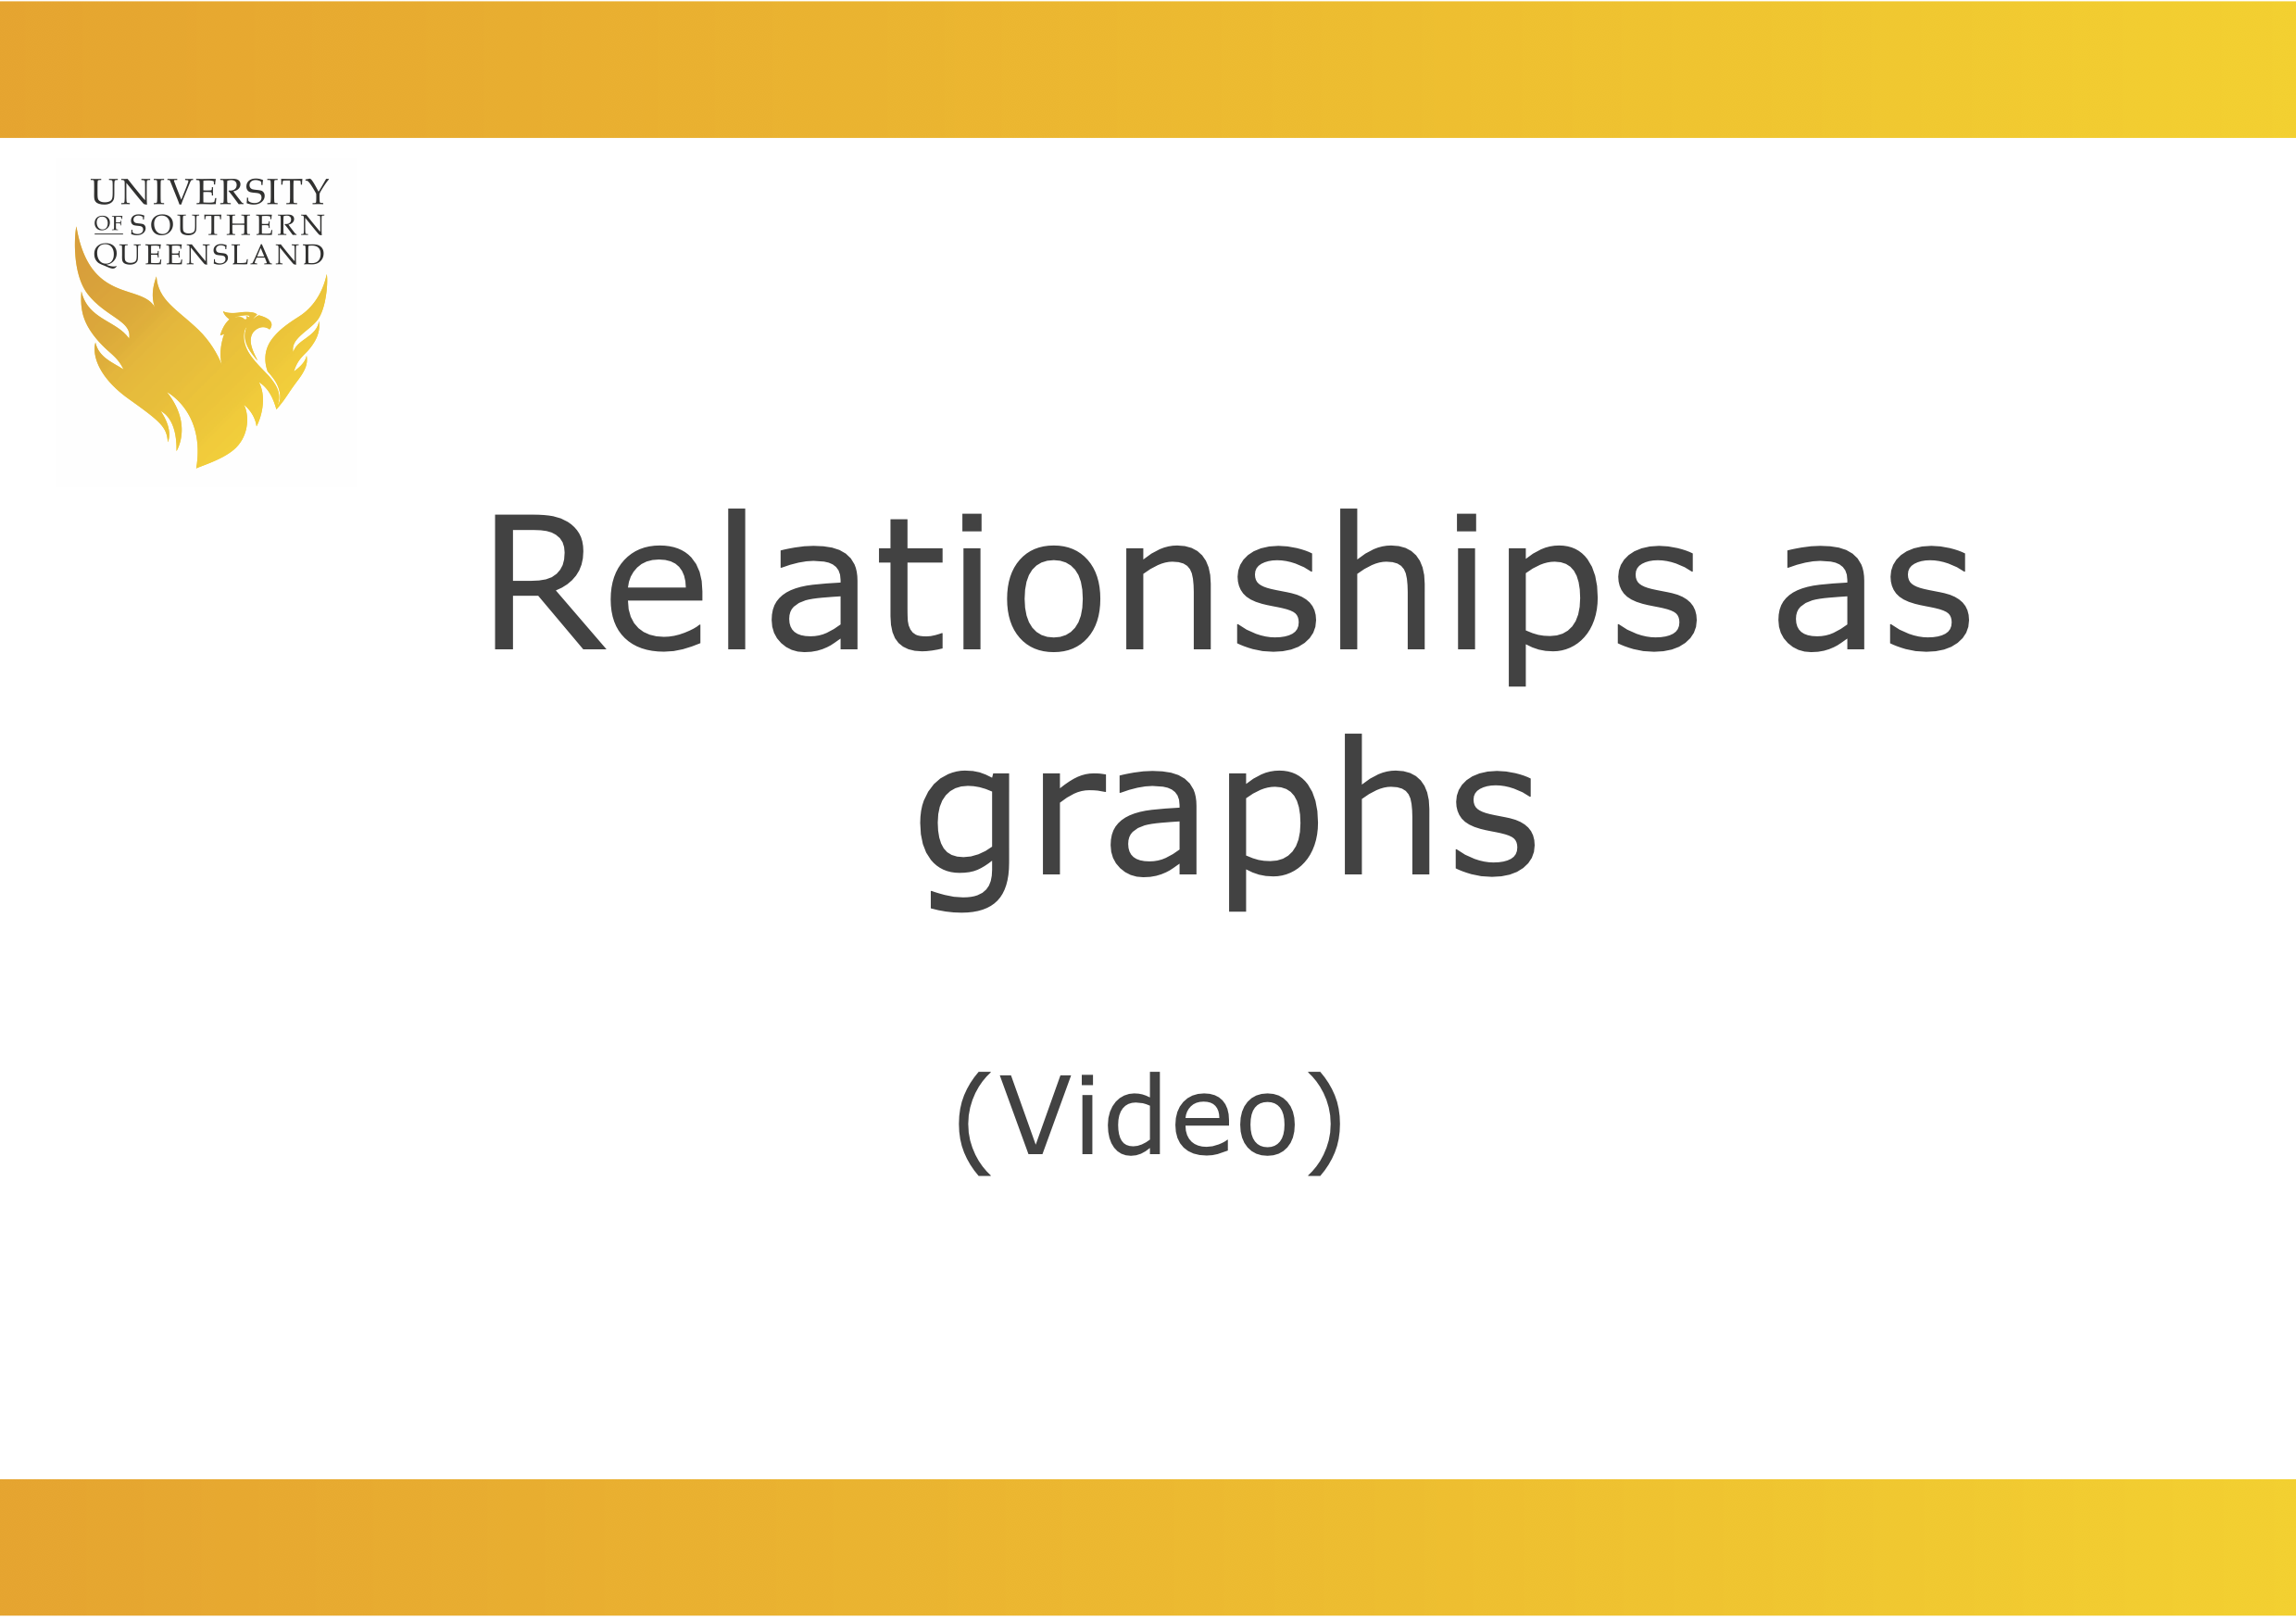 Video to play the video for Relationships as graphs